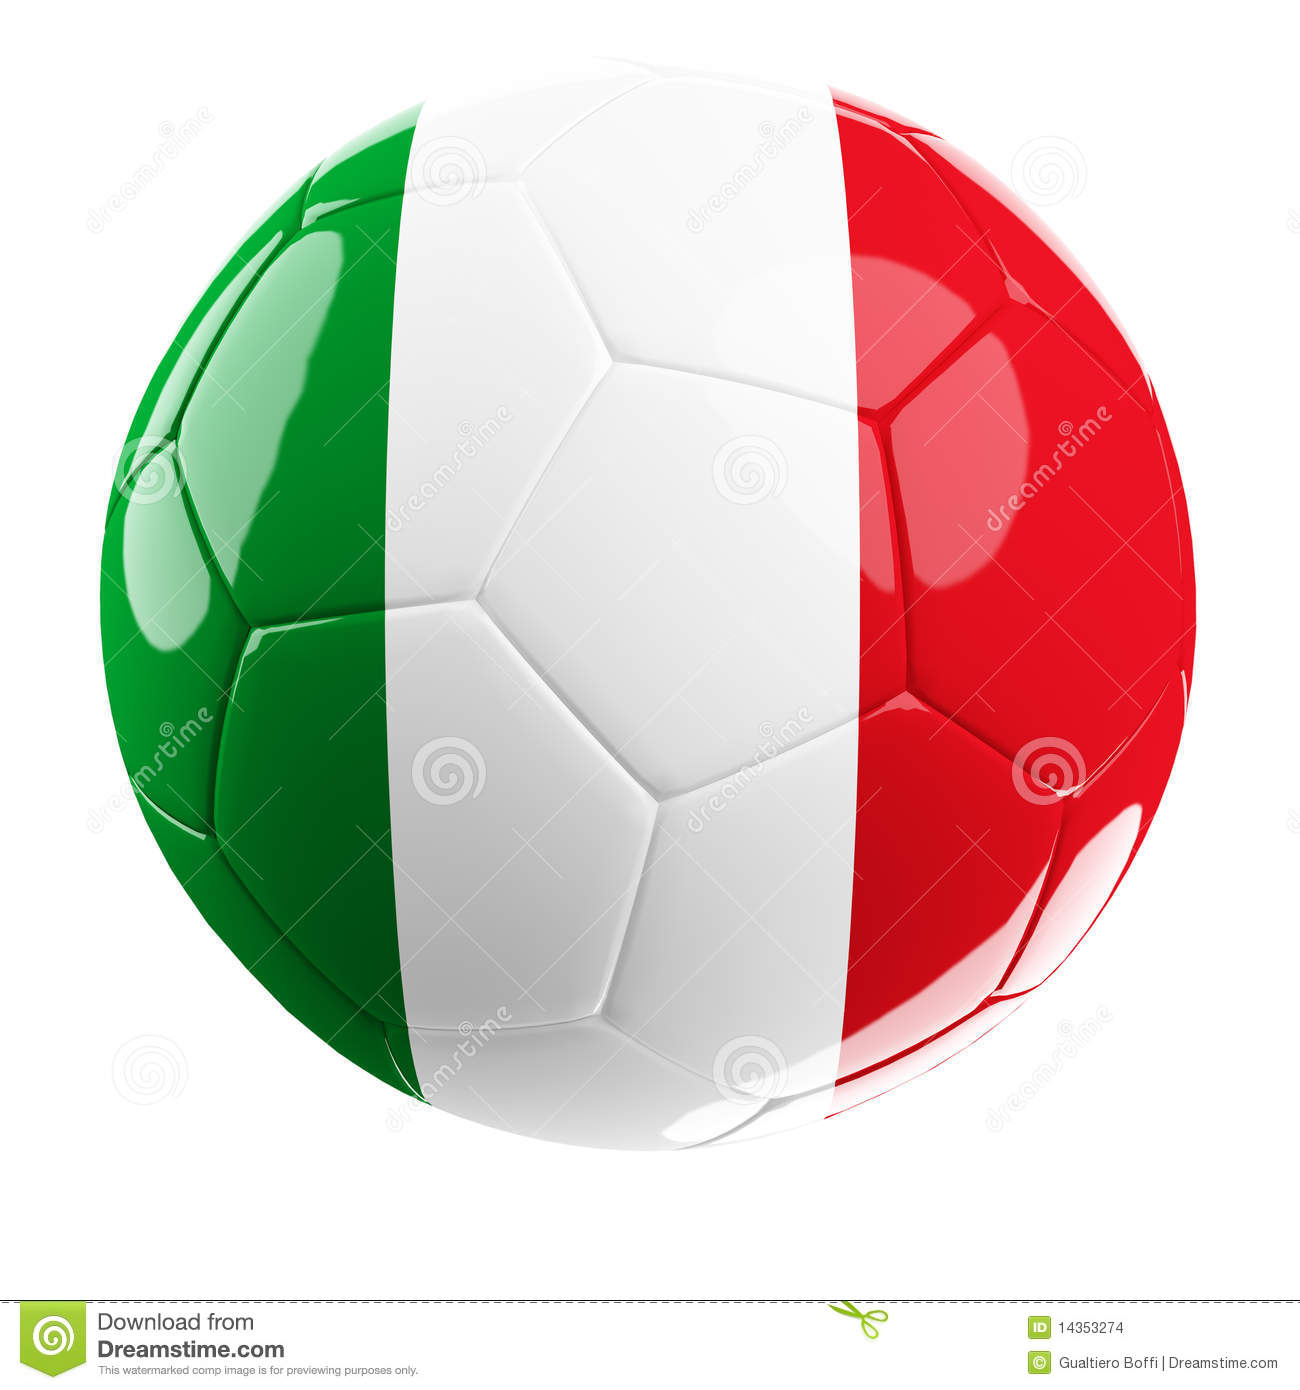 Italy Soccer Ball - Sports and Recreation - Great Clipart for ...